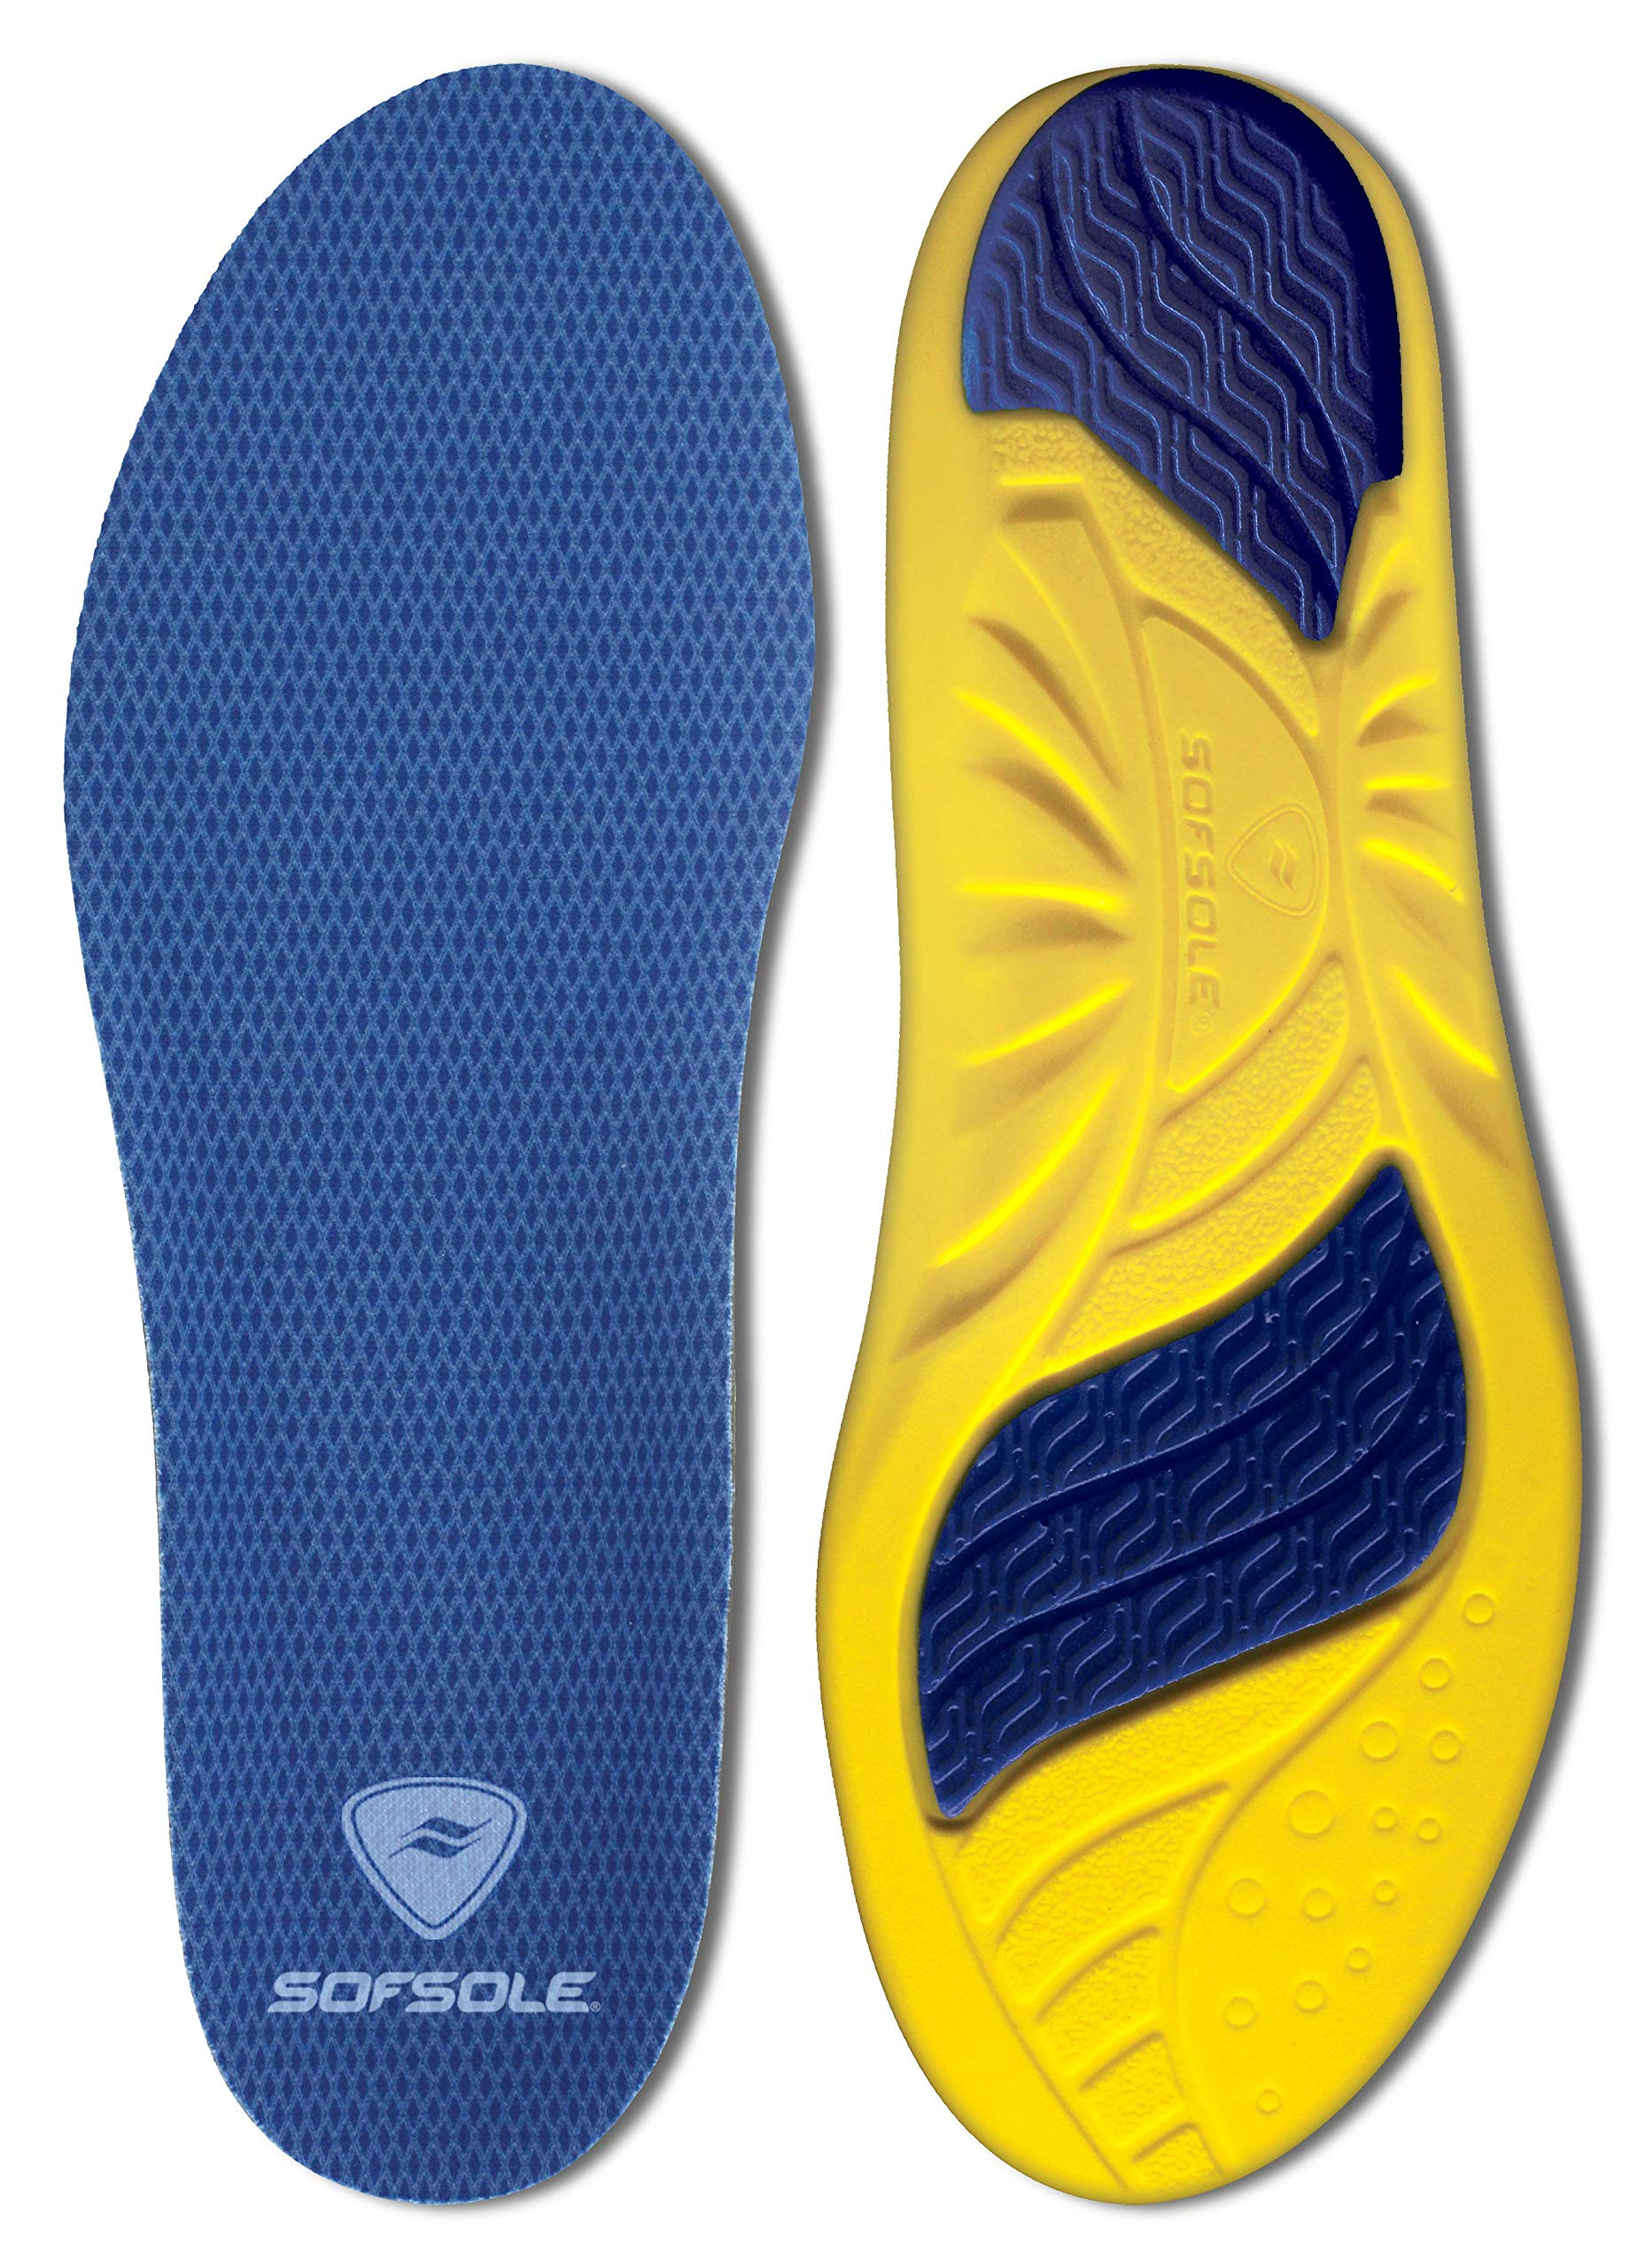 Sof Sole Insoles Performance Full Length